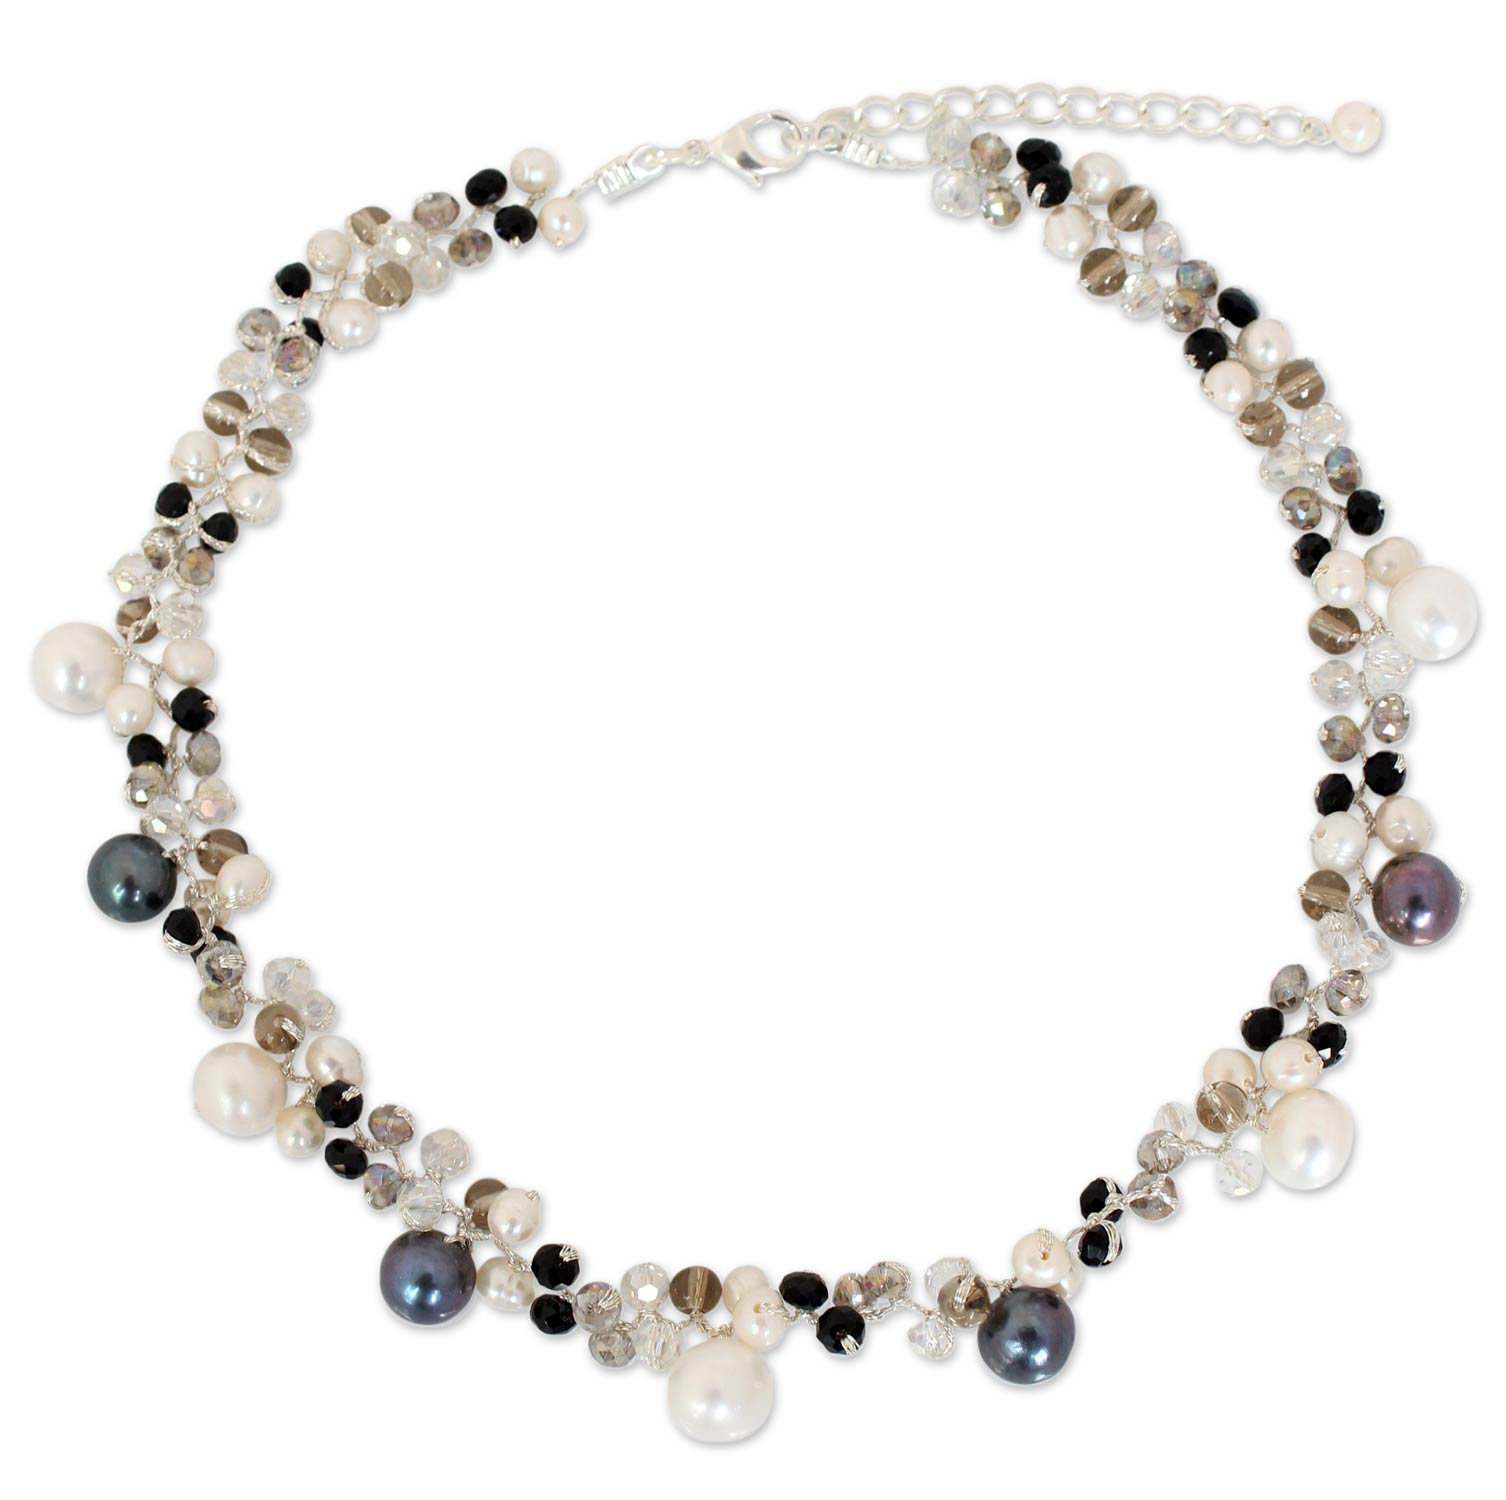 pearls, choker necklace, glass beads silk cord Pearl Choker Necklace, 'A Spark of Romance' gifts unique mother's day gifts